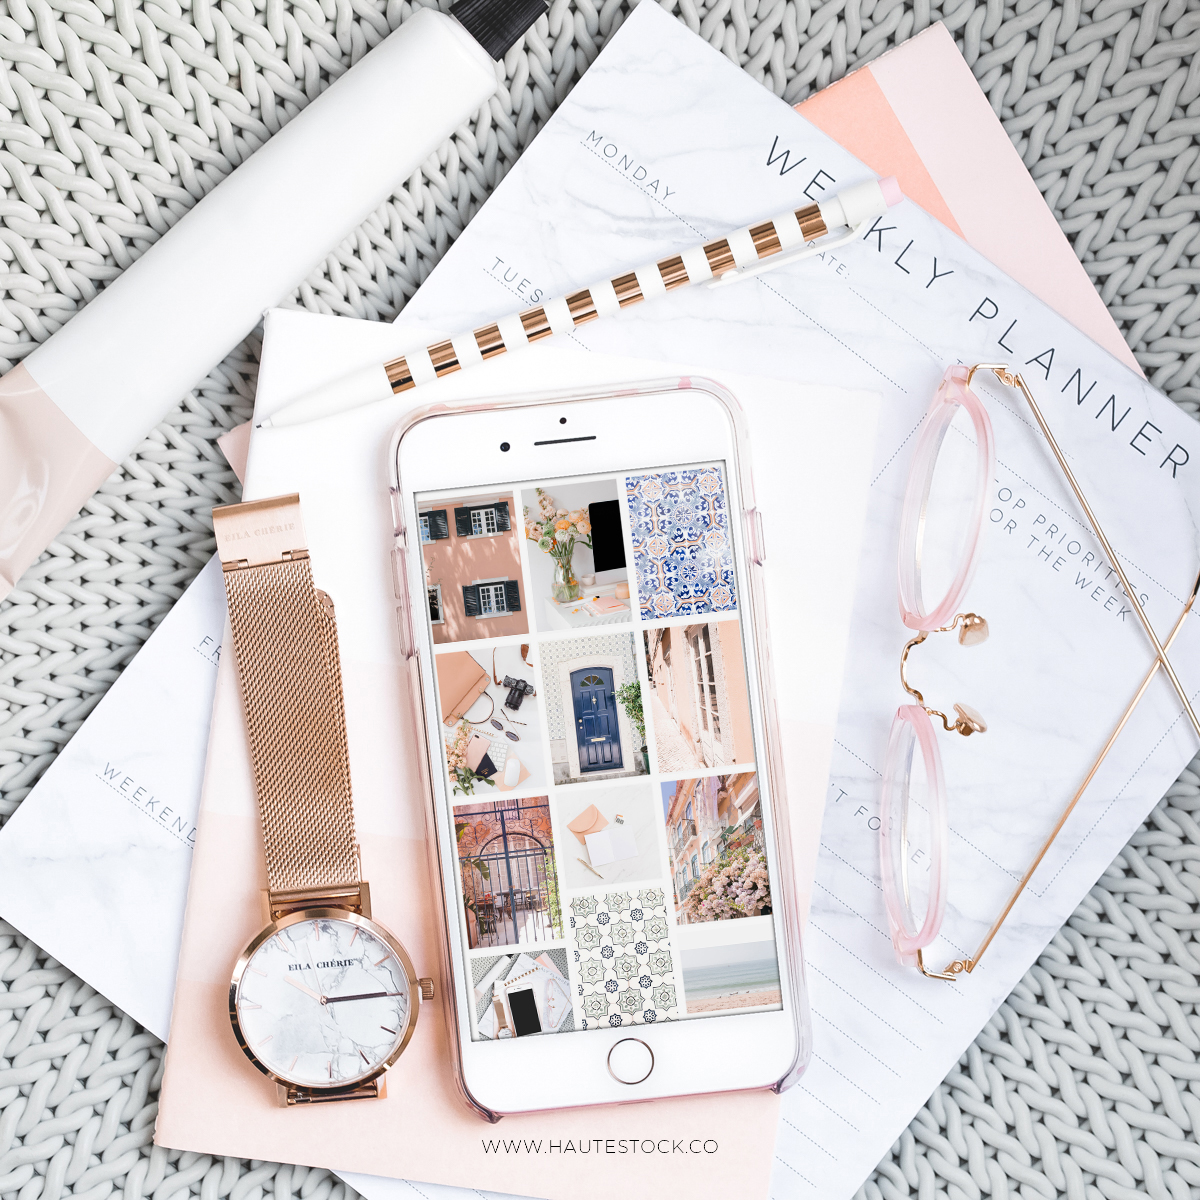 Travel, lifestyle and workspace stock photos exclusively from Haute Stock. Create gorgeous iPhone mockups  to display your work, website and social media accounts.